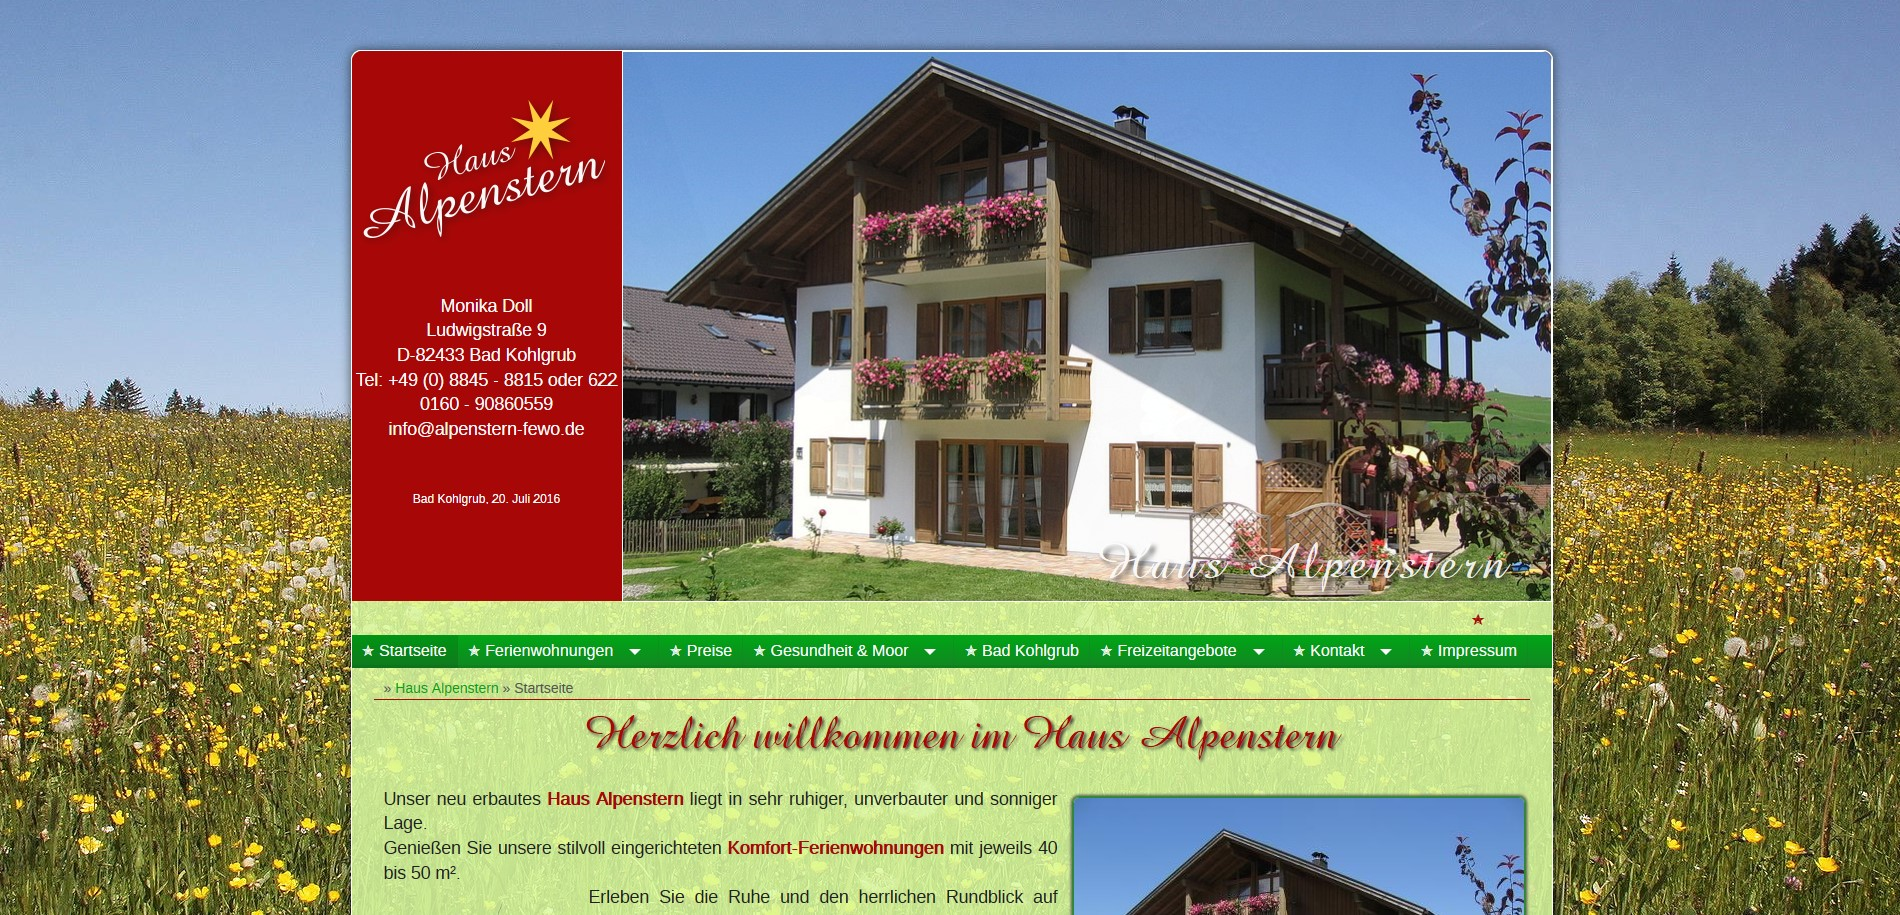 Haus Alpenstern in Bad Kohlgrub